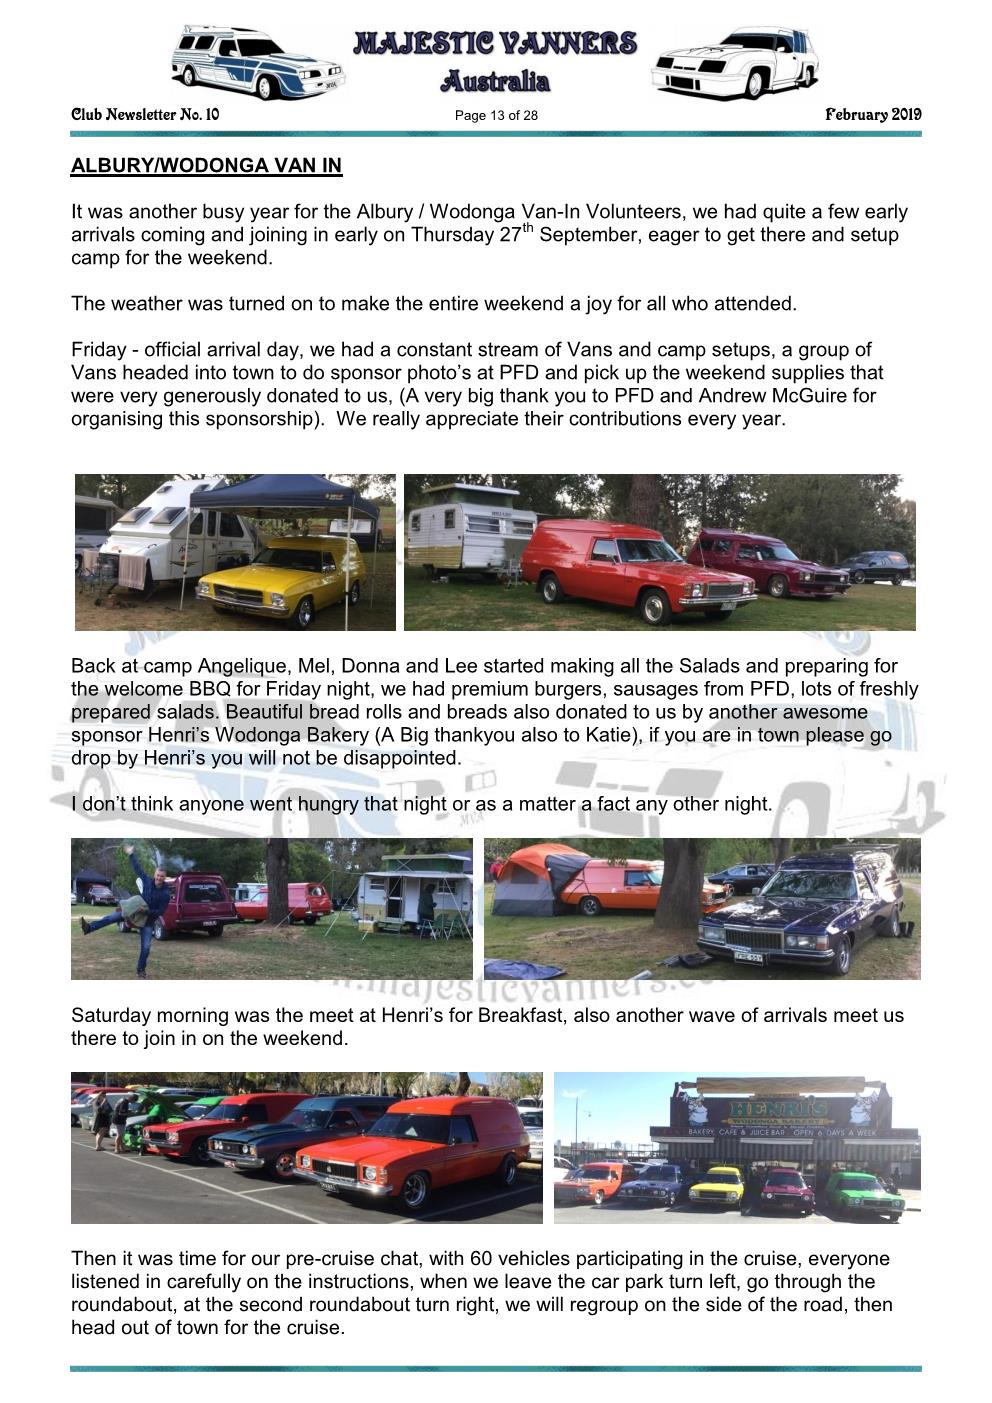 MAJESTIC VANNERS Newsletter Issue No: 10 February 2019 Mv_new22